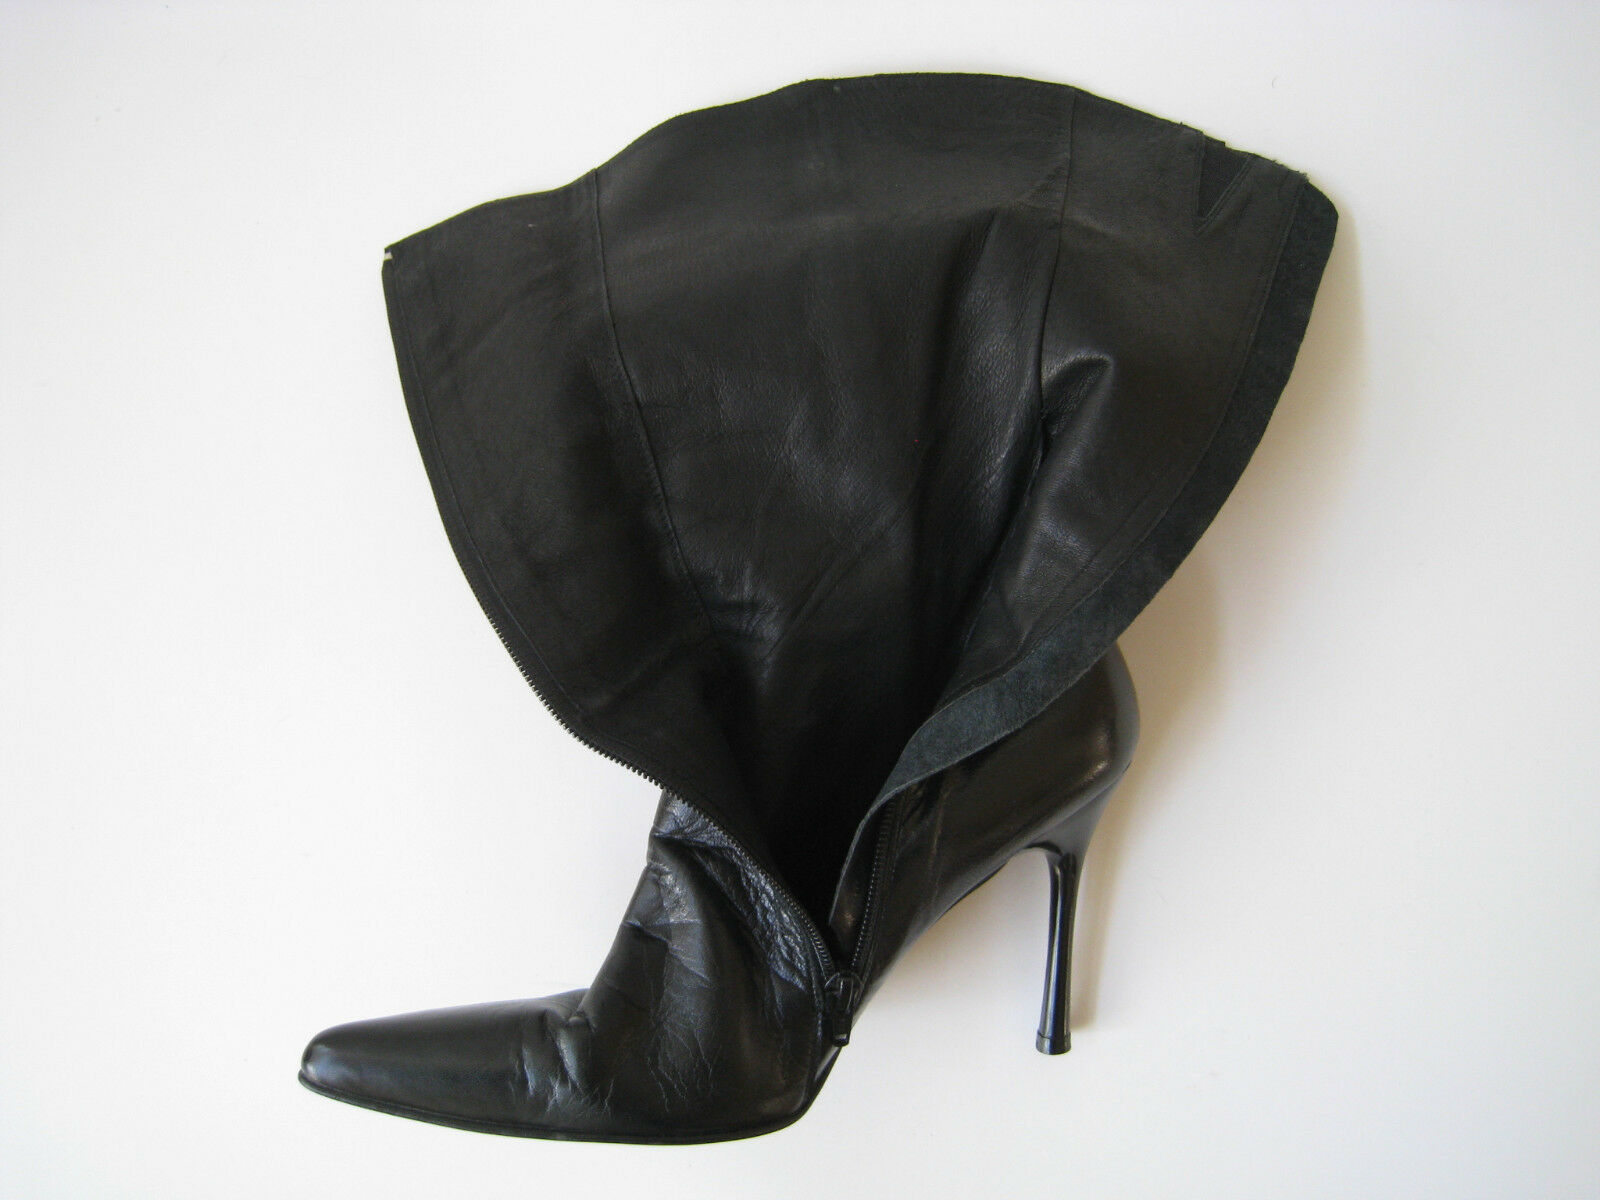 DUNE BLACK CALF LEATHER MID CALF BLACK Stiefel WOMEN US 8 EUR 41 HOT MADE IN SPAIN VINTAGE c37ad4